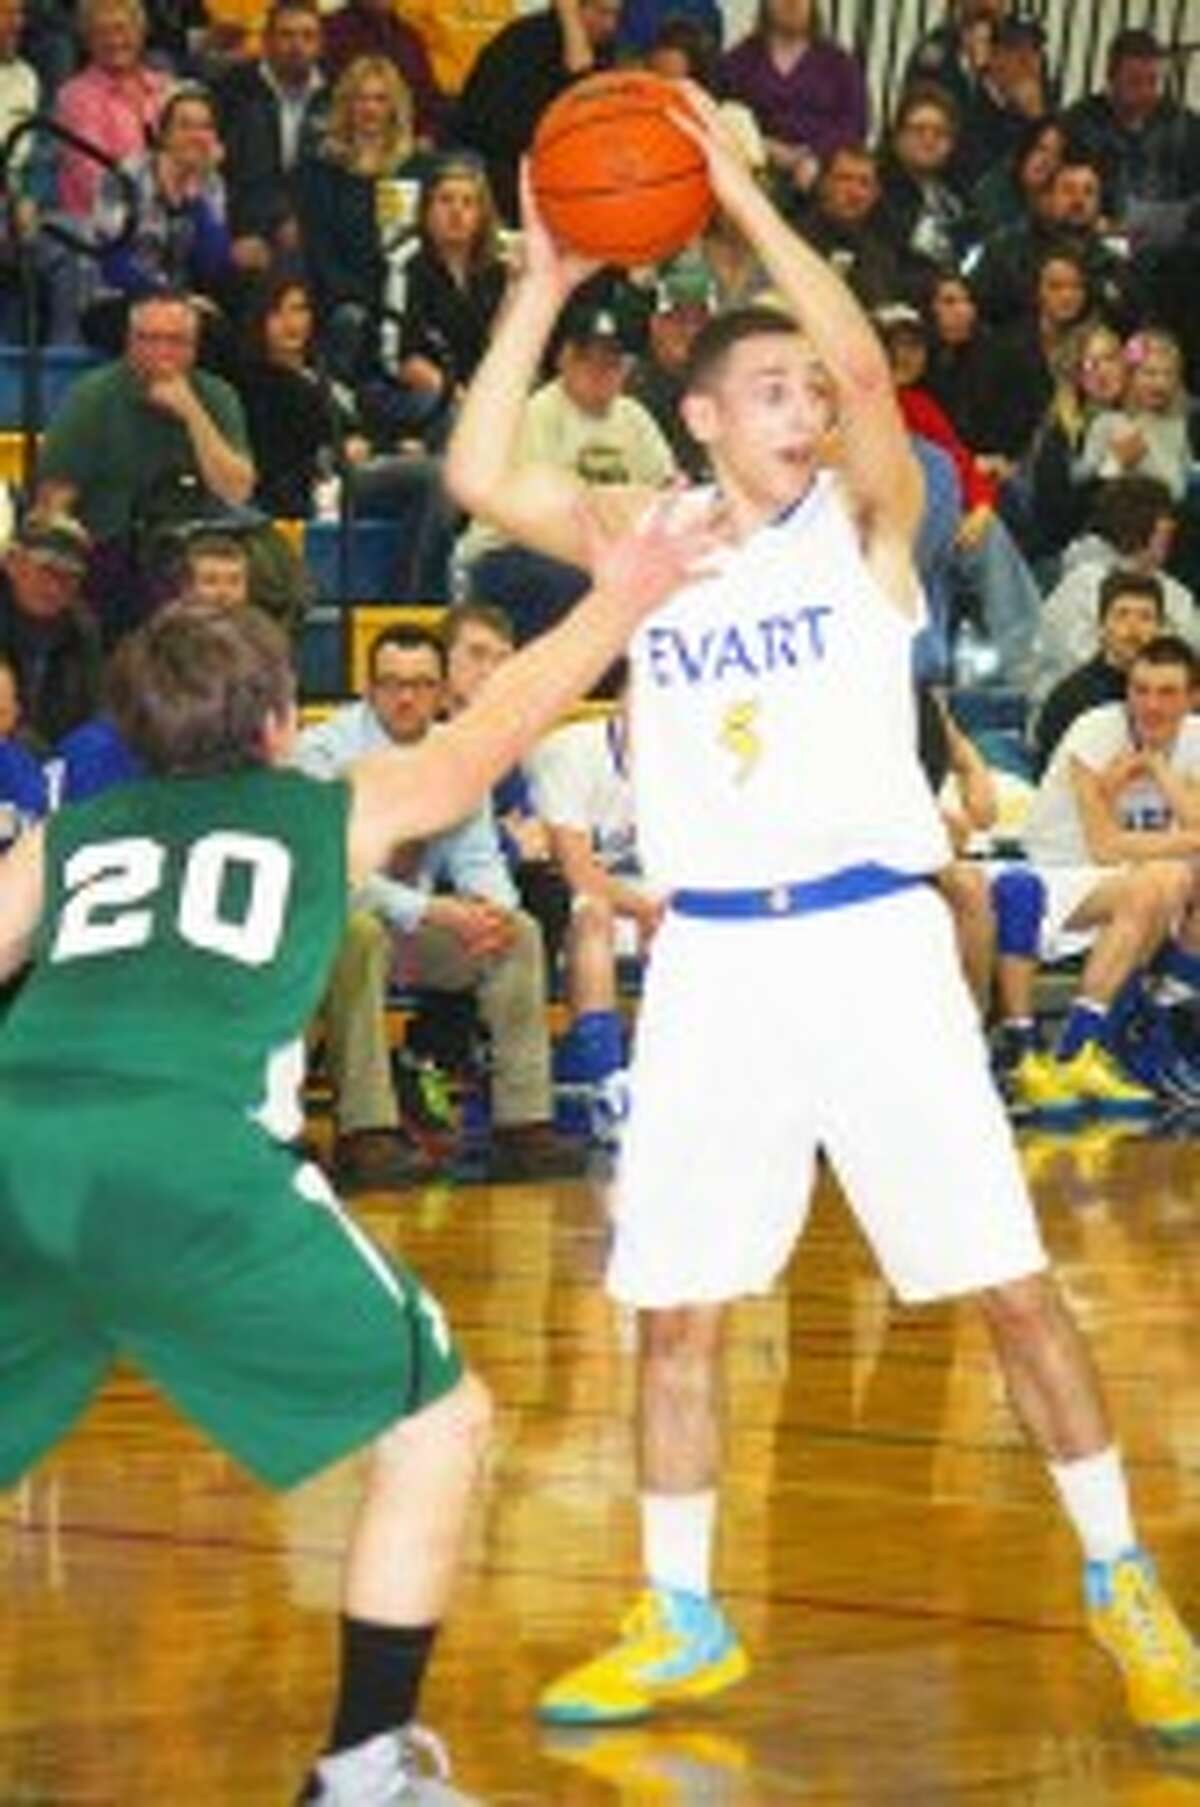 SEASON FINALE: Nate Struble looks to make a pass for Evart against Pine River. (Herald Review/John Raffel)